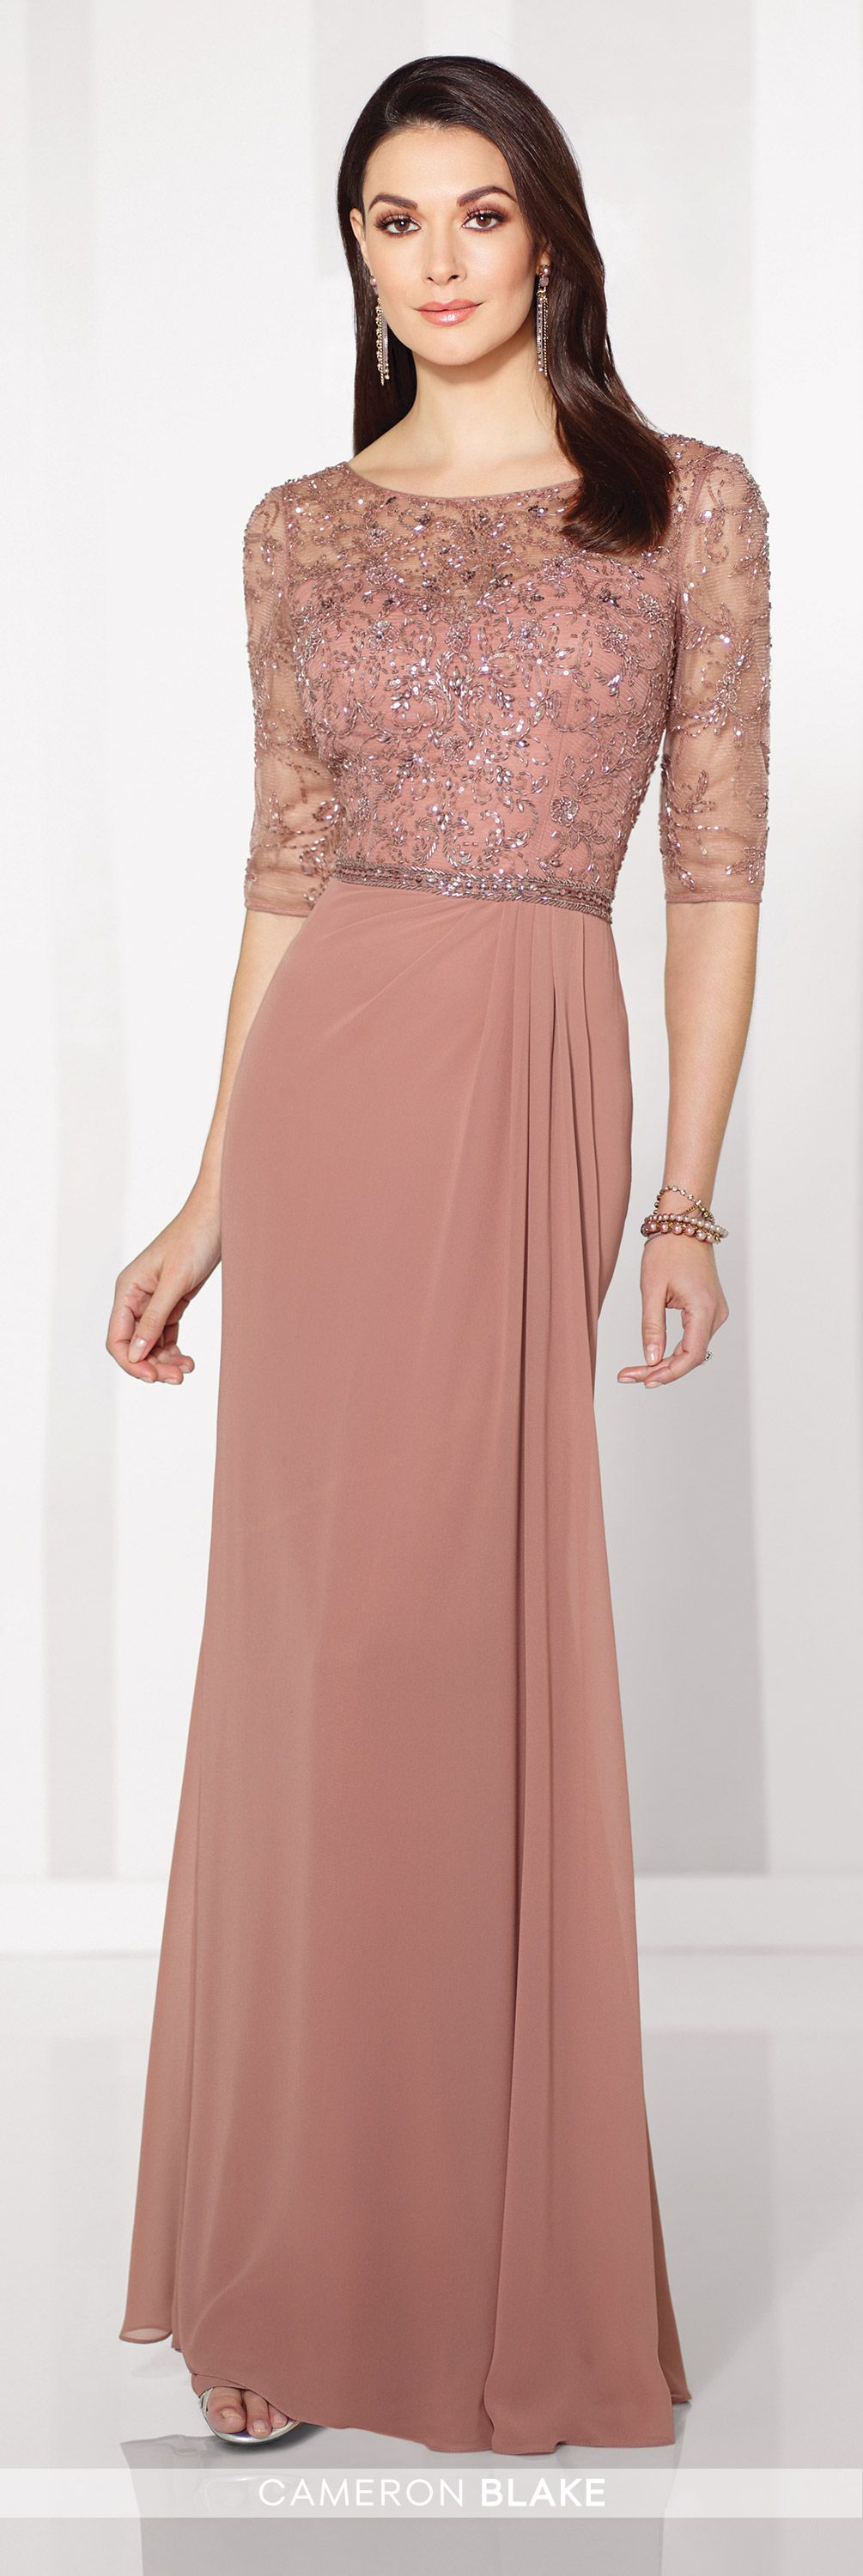 Cameron Blake 216684 Mother of the Bride Chiffon A-line Gown ...